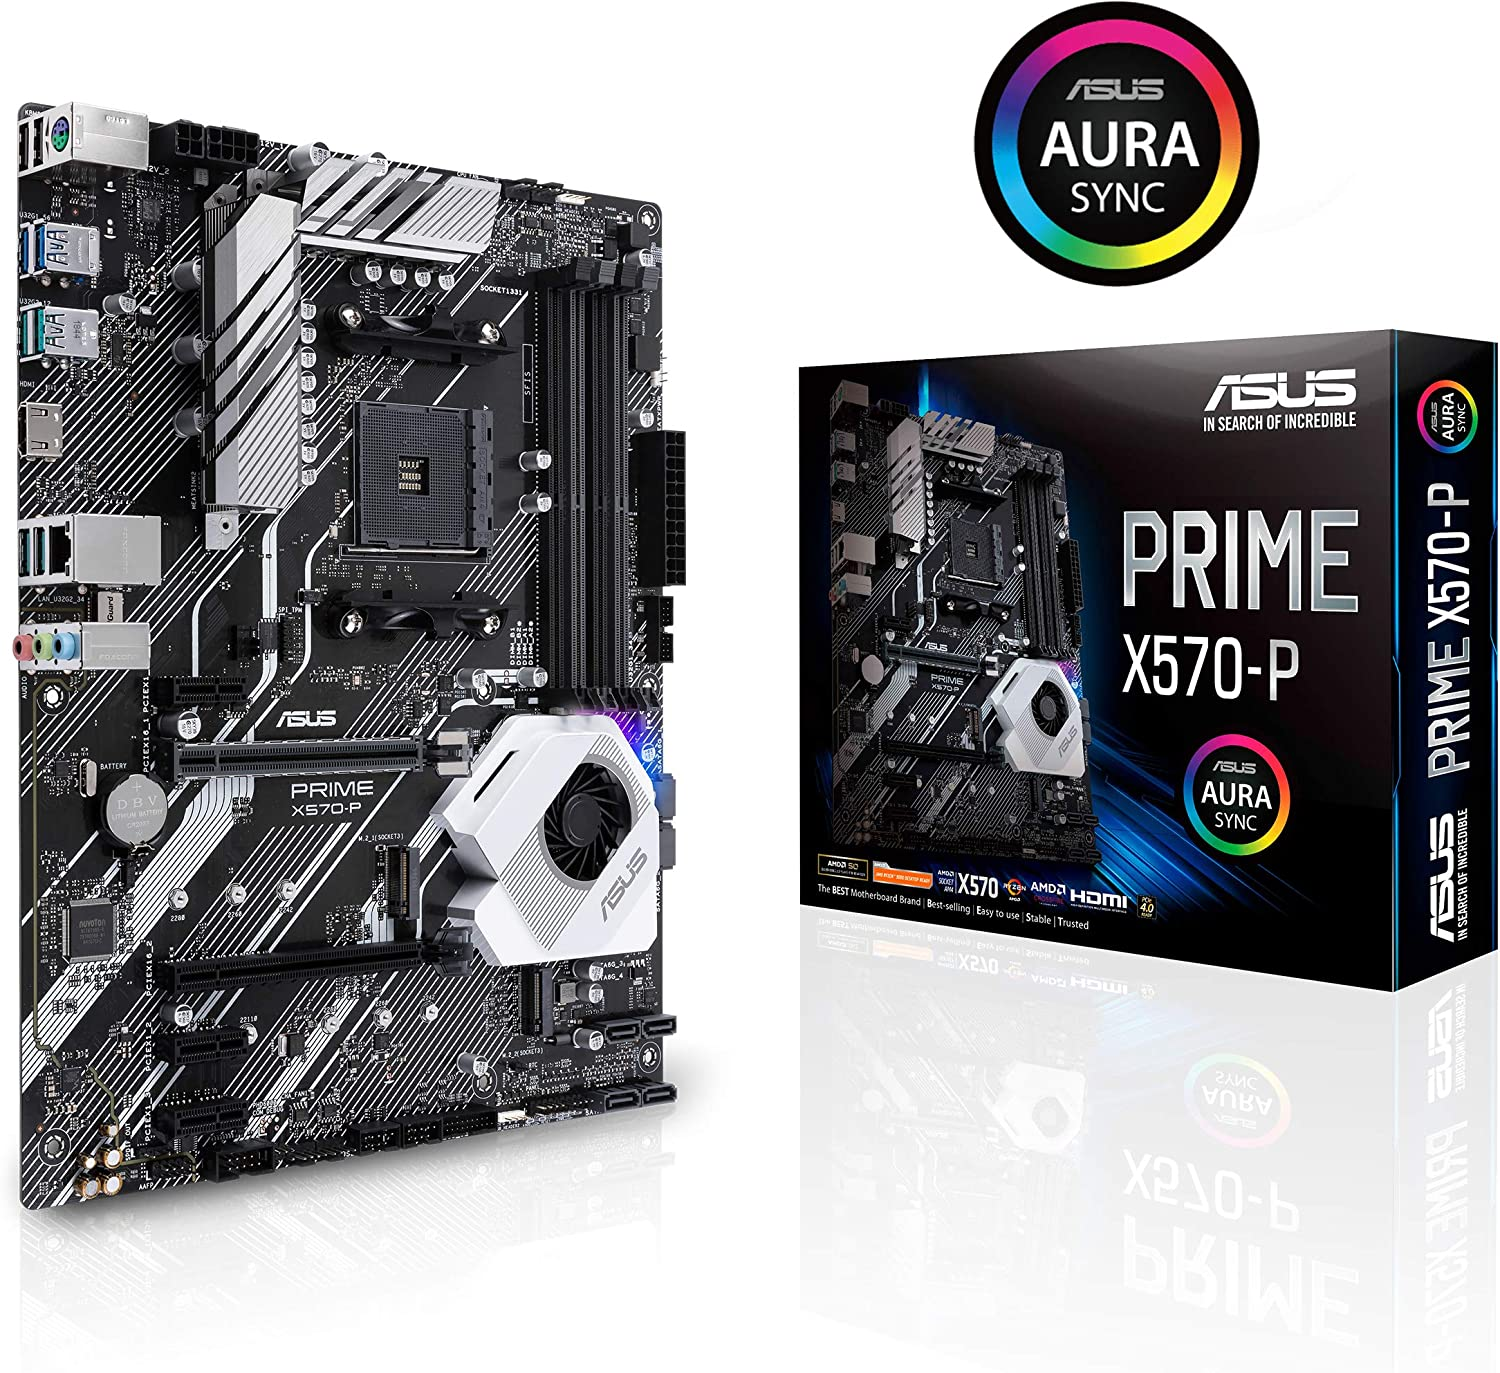 91OLGGjucCL. AC SL1500 Best Ryzen 5 2600 Motherboards Reviews